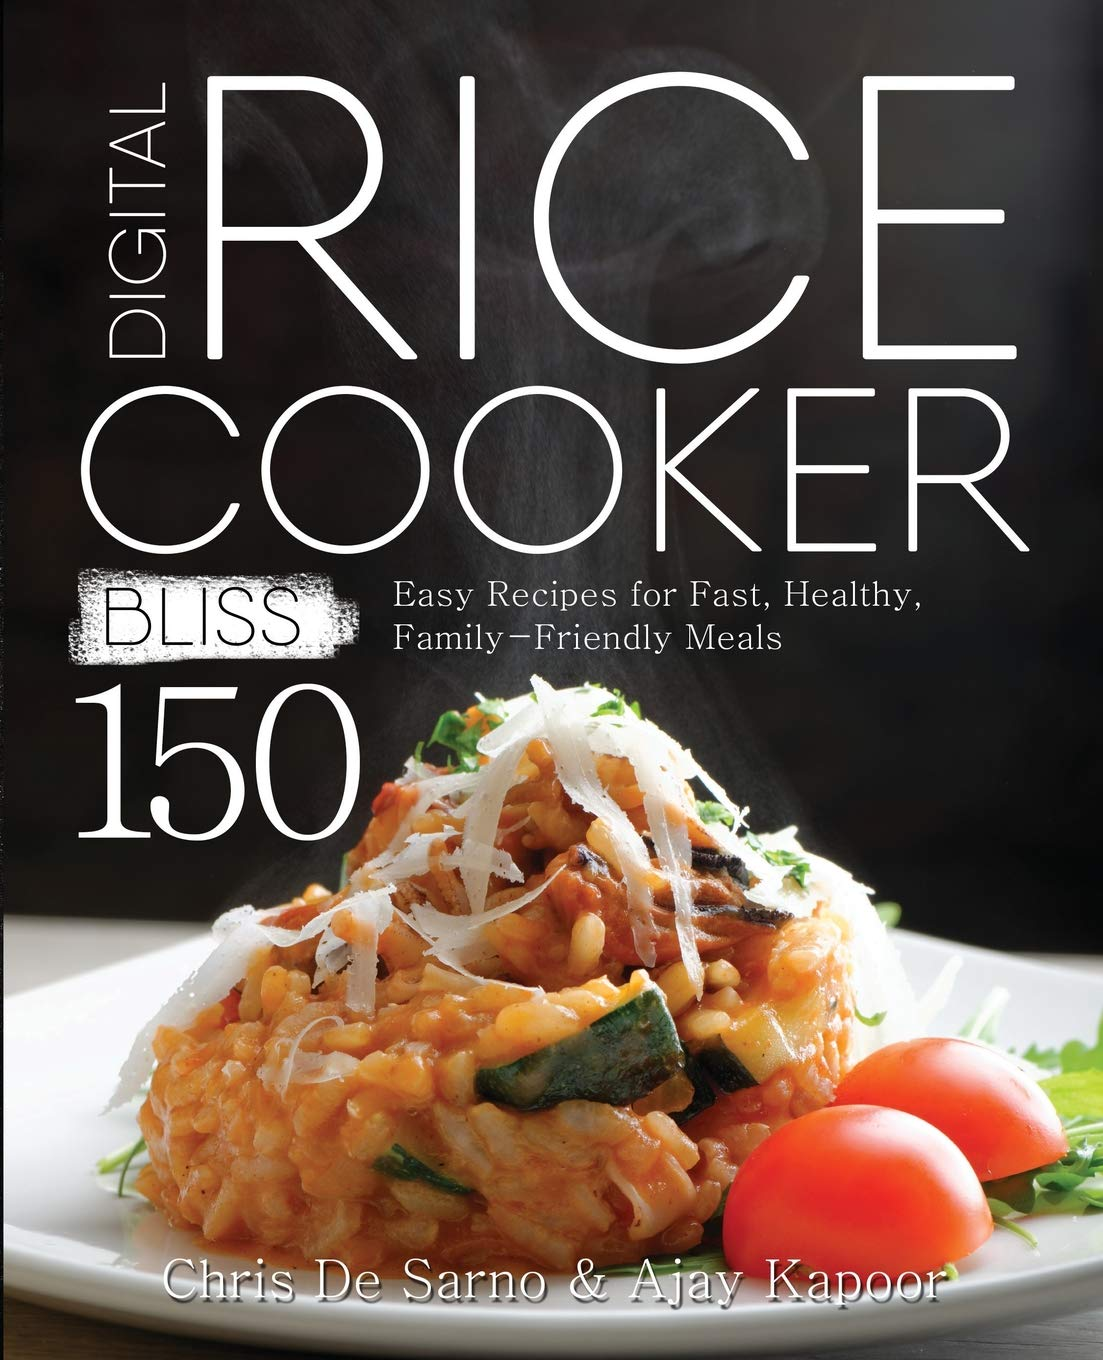 Download Digital Rice Cooker Bliss: 150 Easy Recipes for Fast, Healthy, Family-Friendly Meals ebook